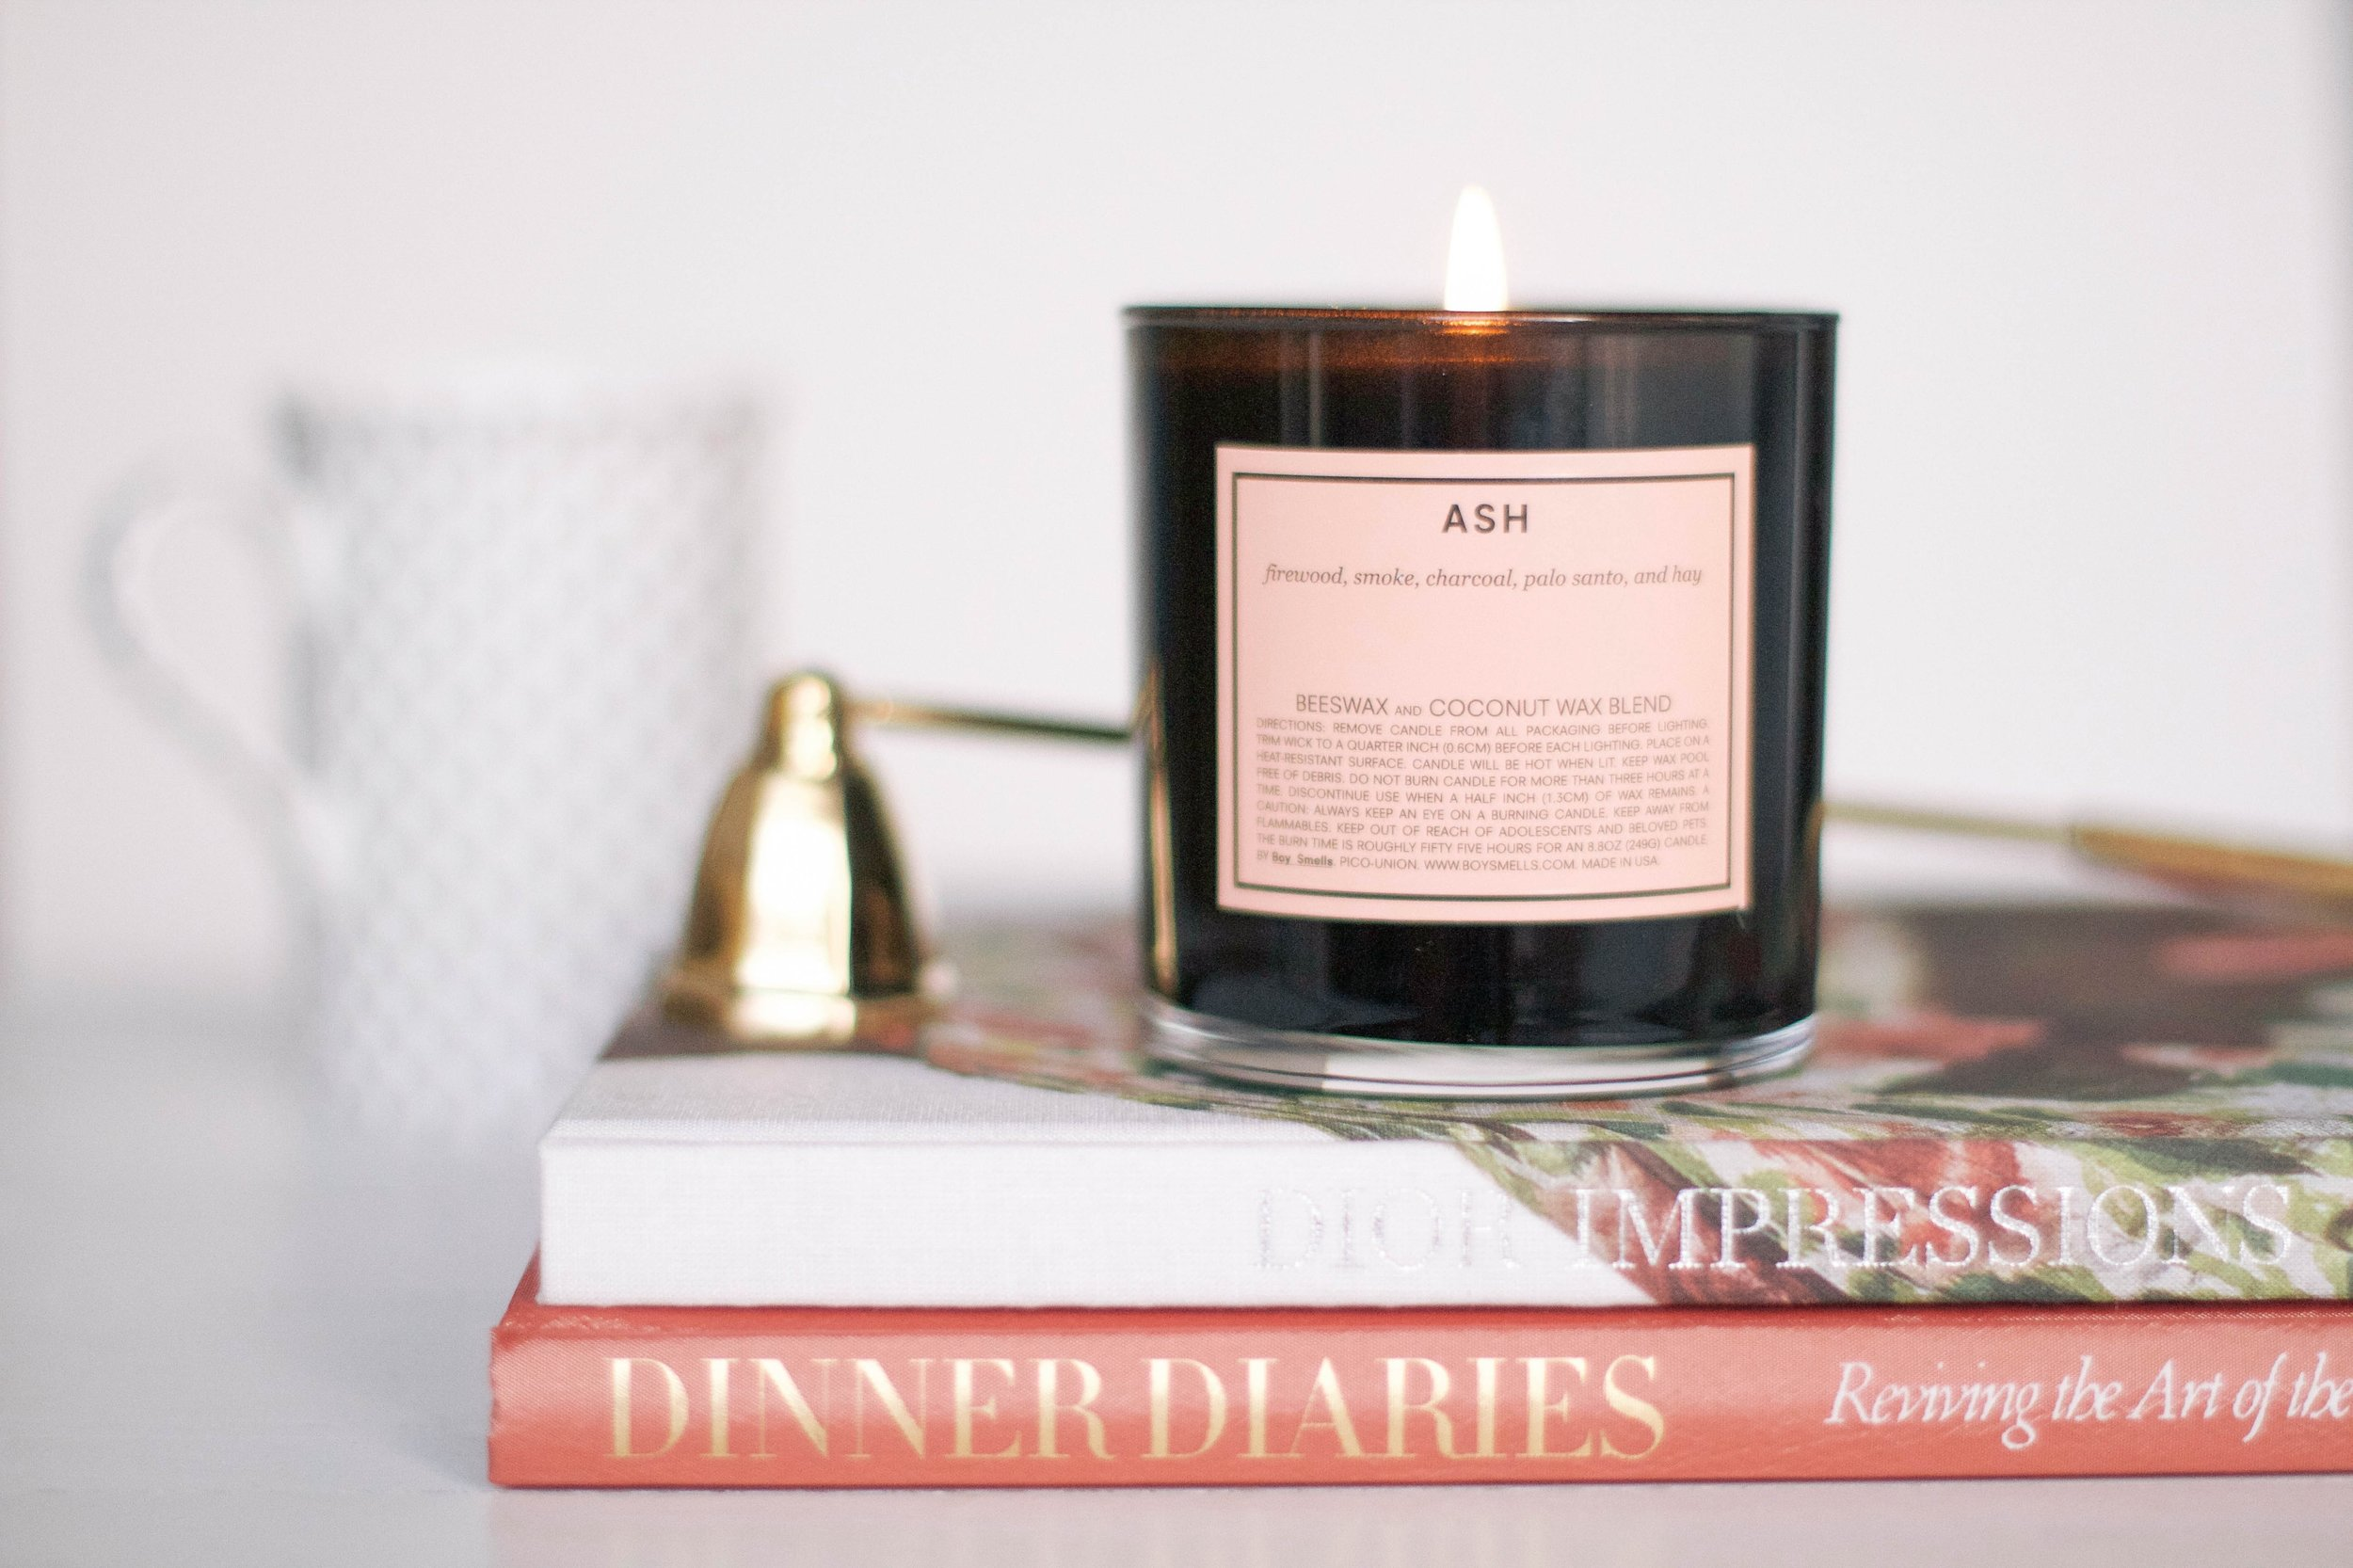 candle    ,         candle snuffer    ,         dior impressions    ,         dinner diaries    .